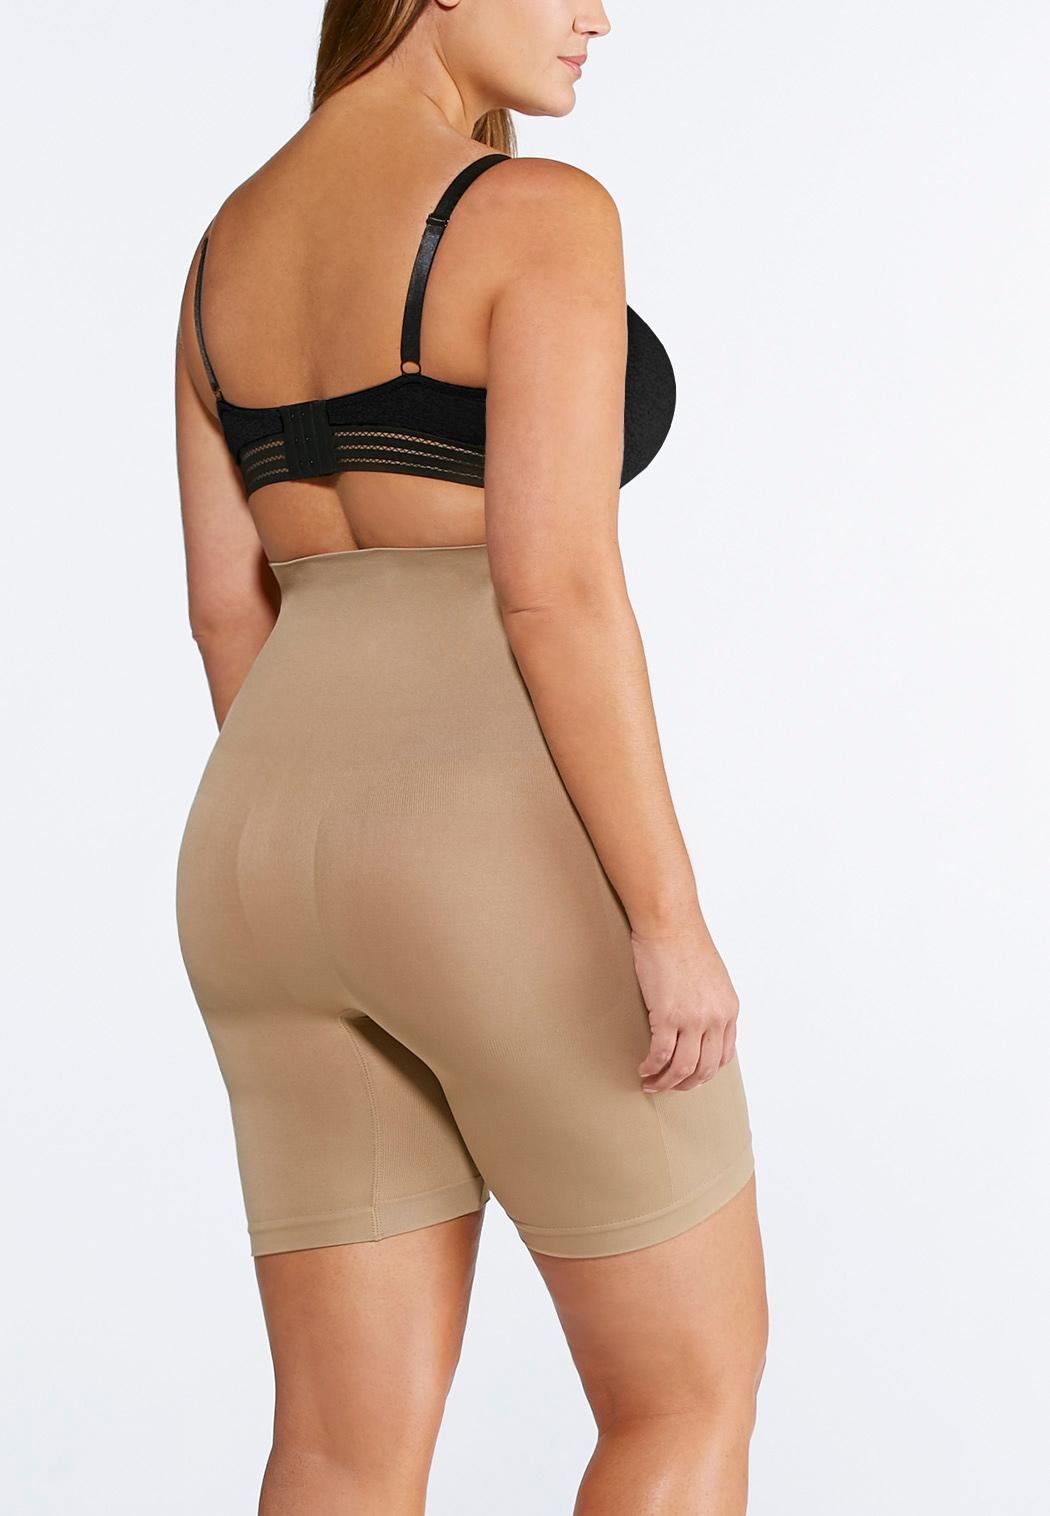 Plus Size Nude Seamless High Waist Shorts (Item #91582420)